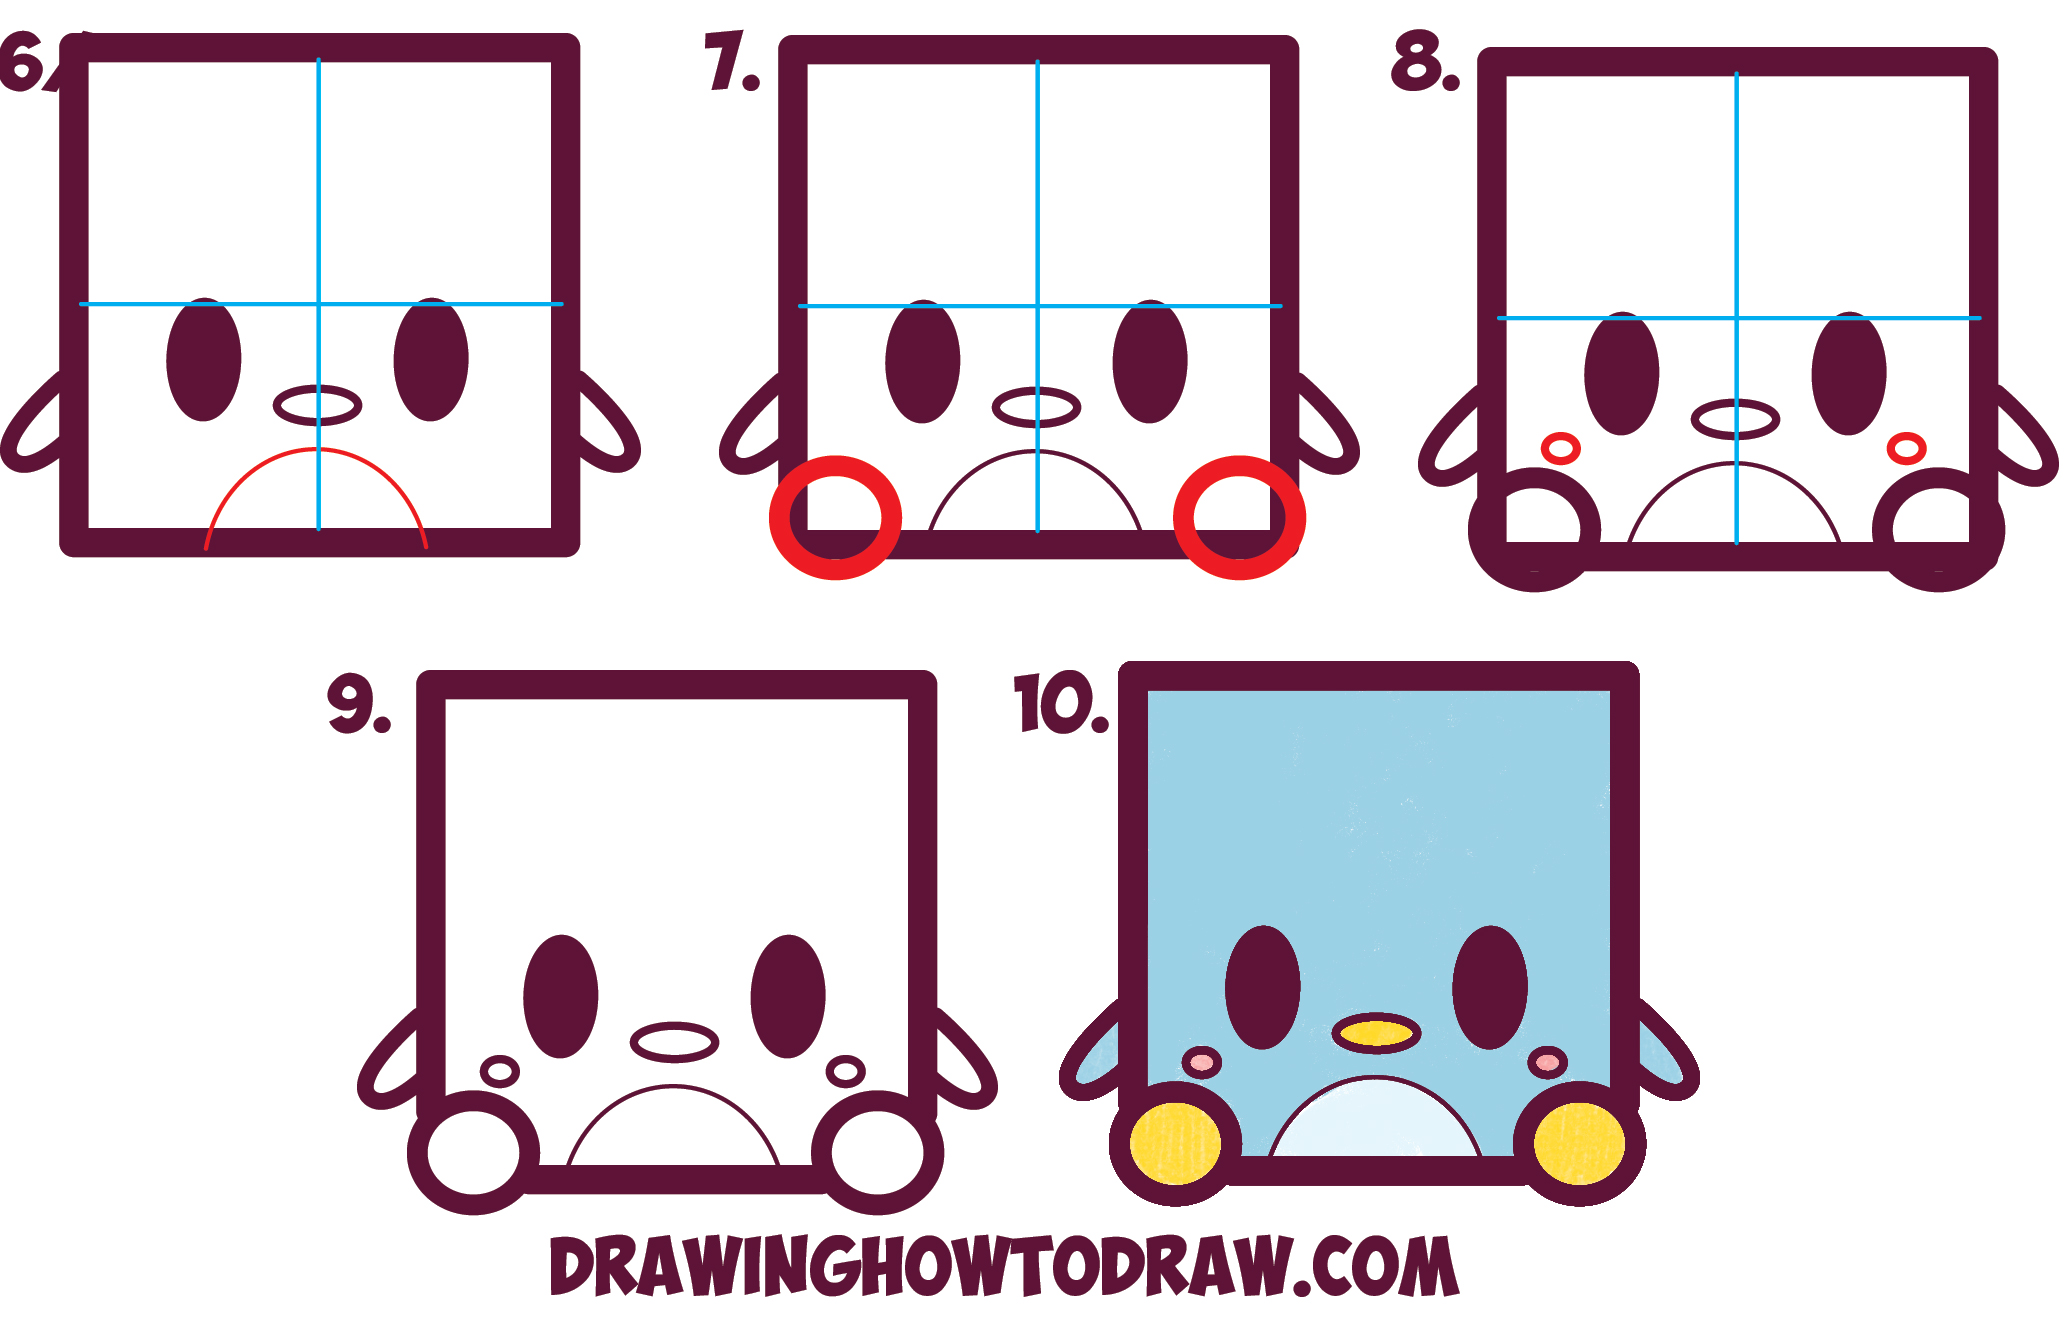 Cute penguins cute mighty pictures - Learn How To Draw Cute Kawaii Penguins From Square Shape With Simple Steps Drawing Lesson